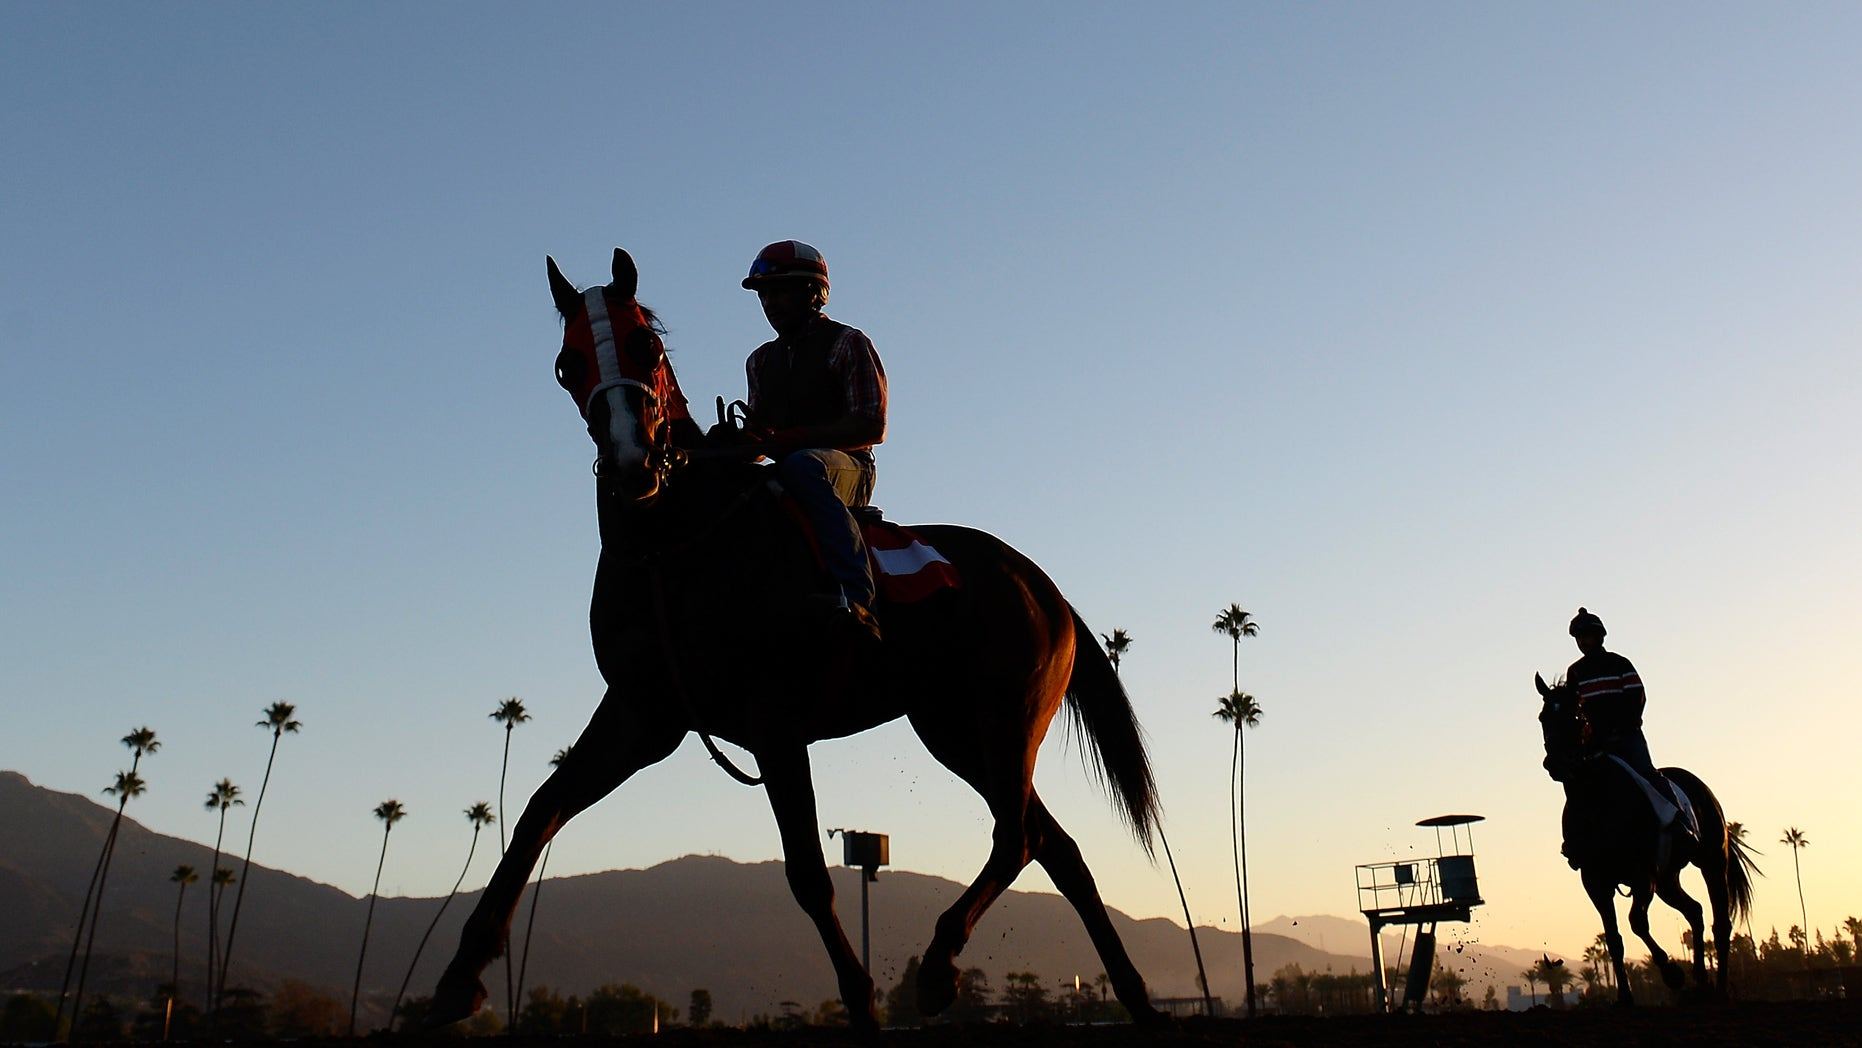 Horses training in preparation for the 2014 Breeder's Cup at Santa Anita Park on Oct. 29, 2014, in Arcadia, California. (Harry How/Getty Images, File)